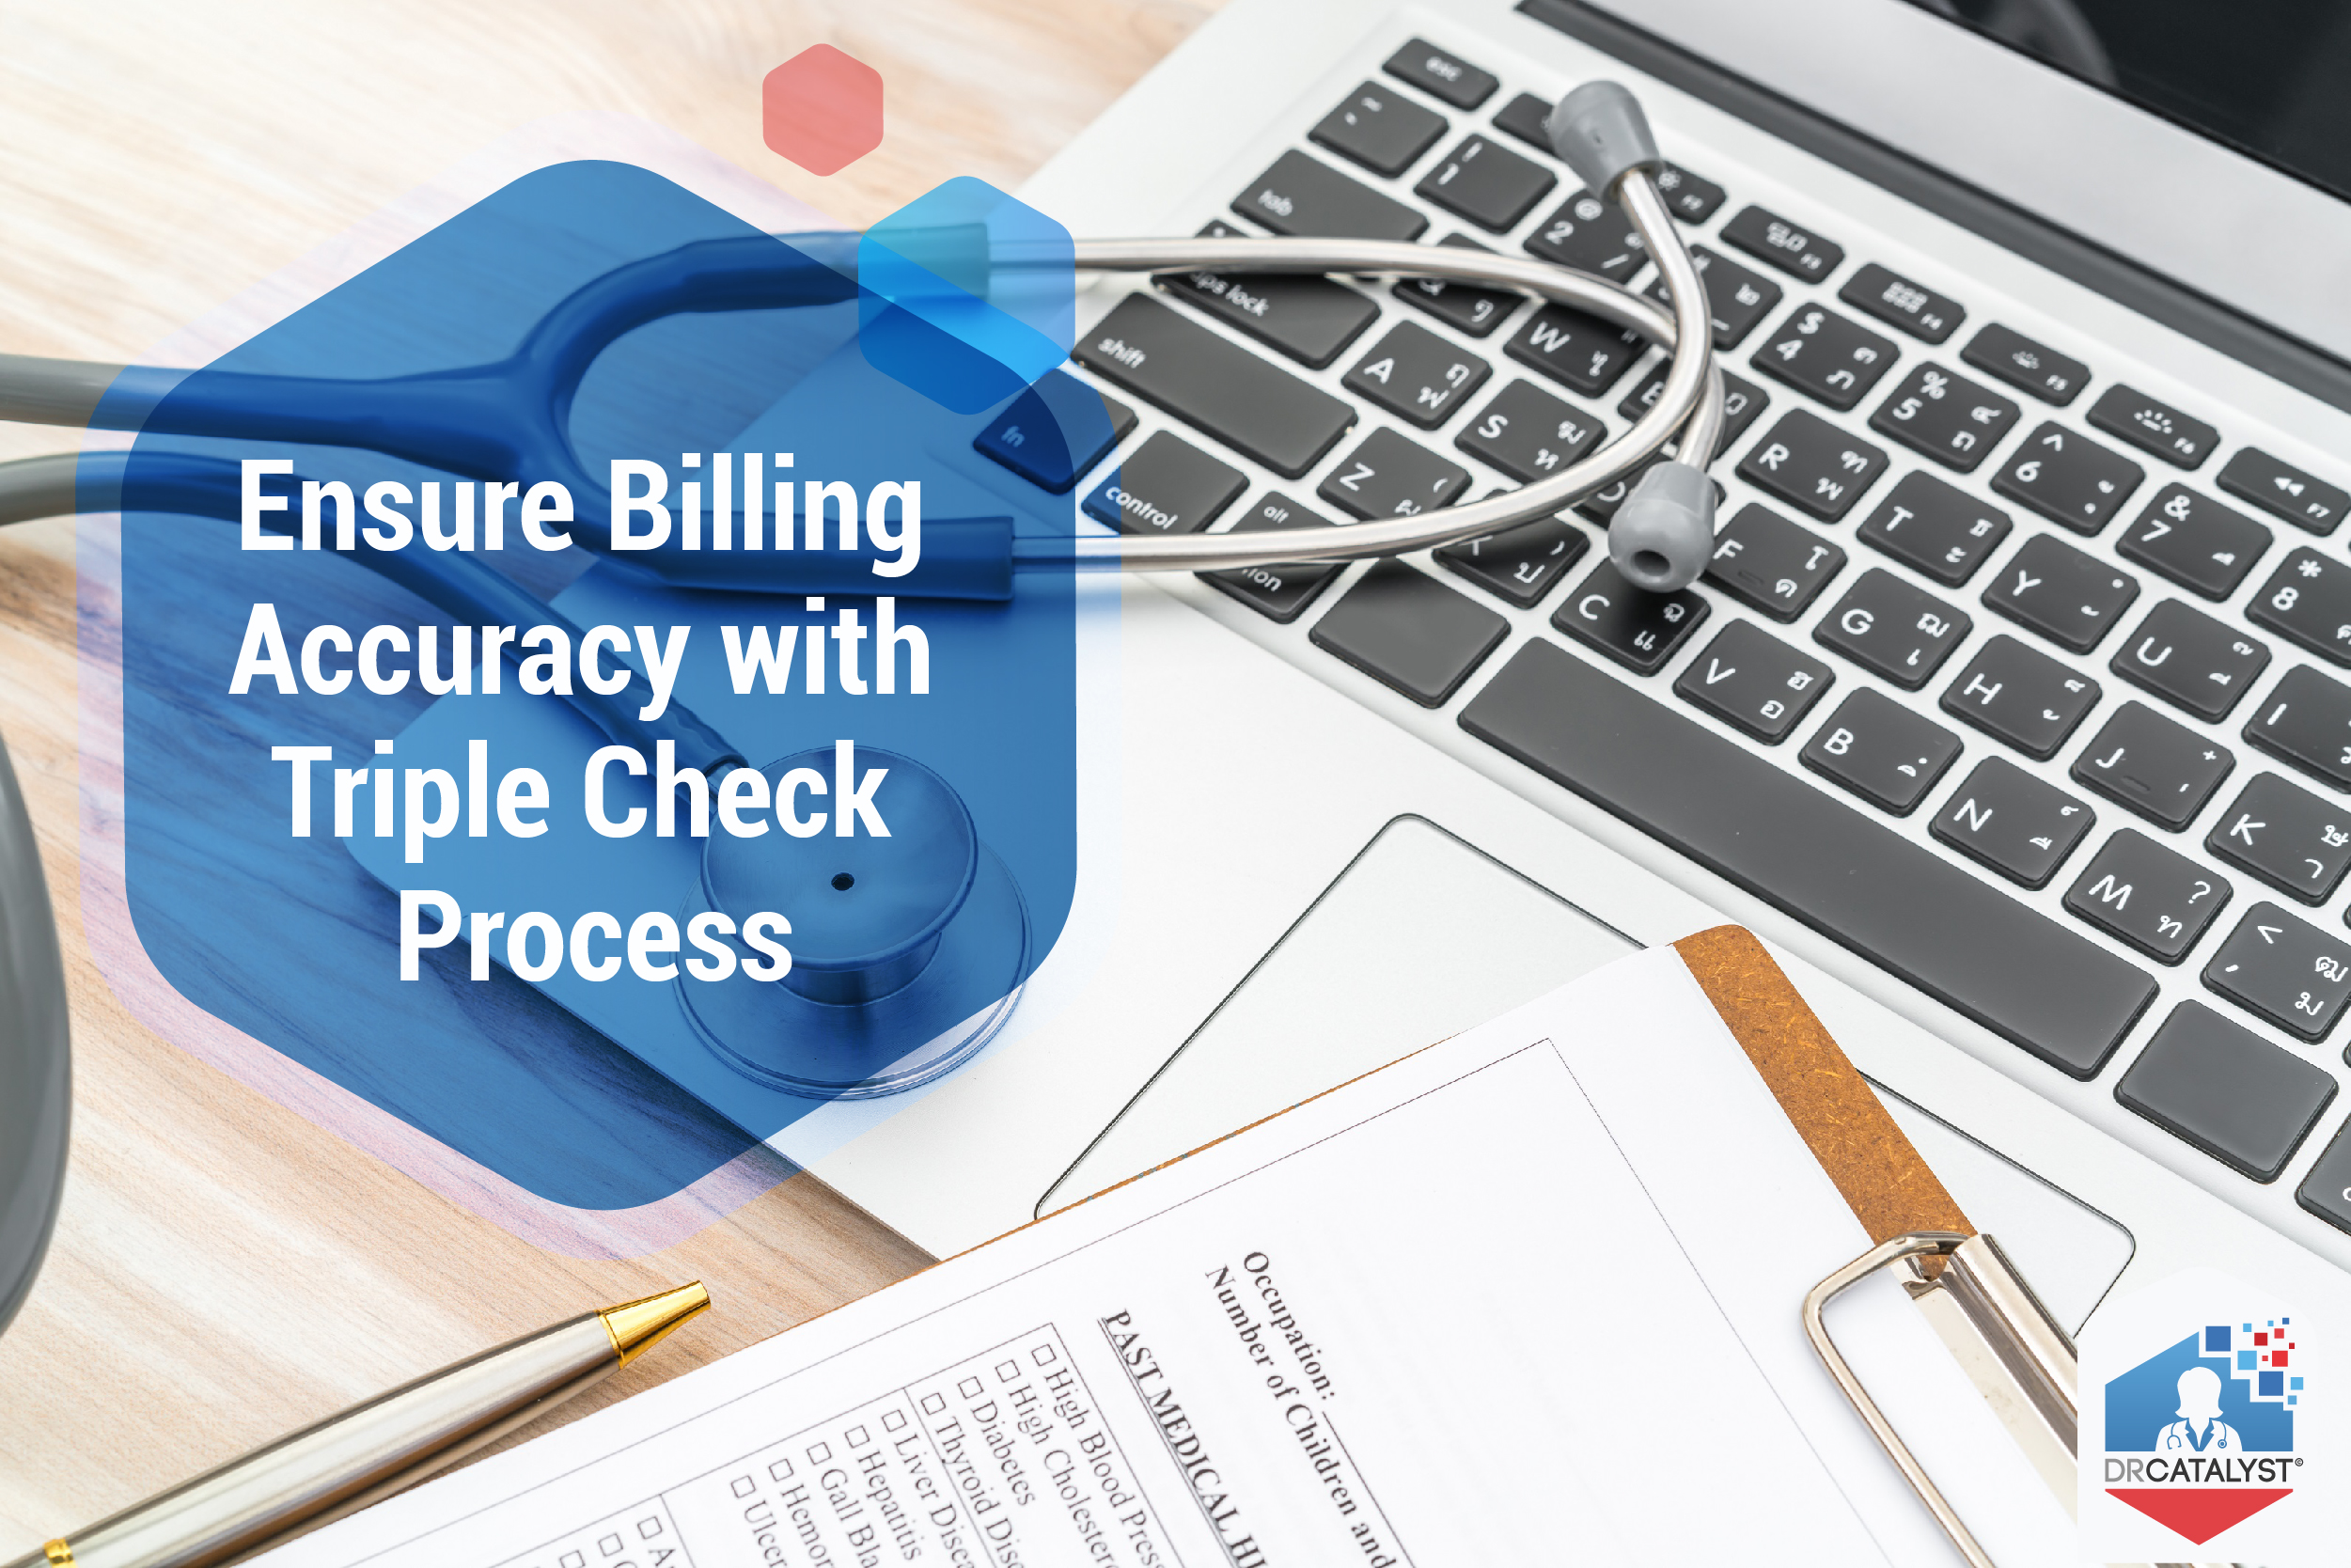 Ensure Billing Accuracy with the Triple Check Process